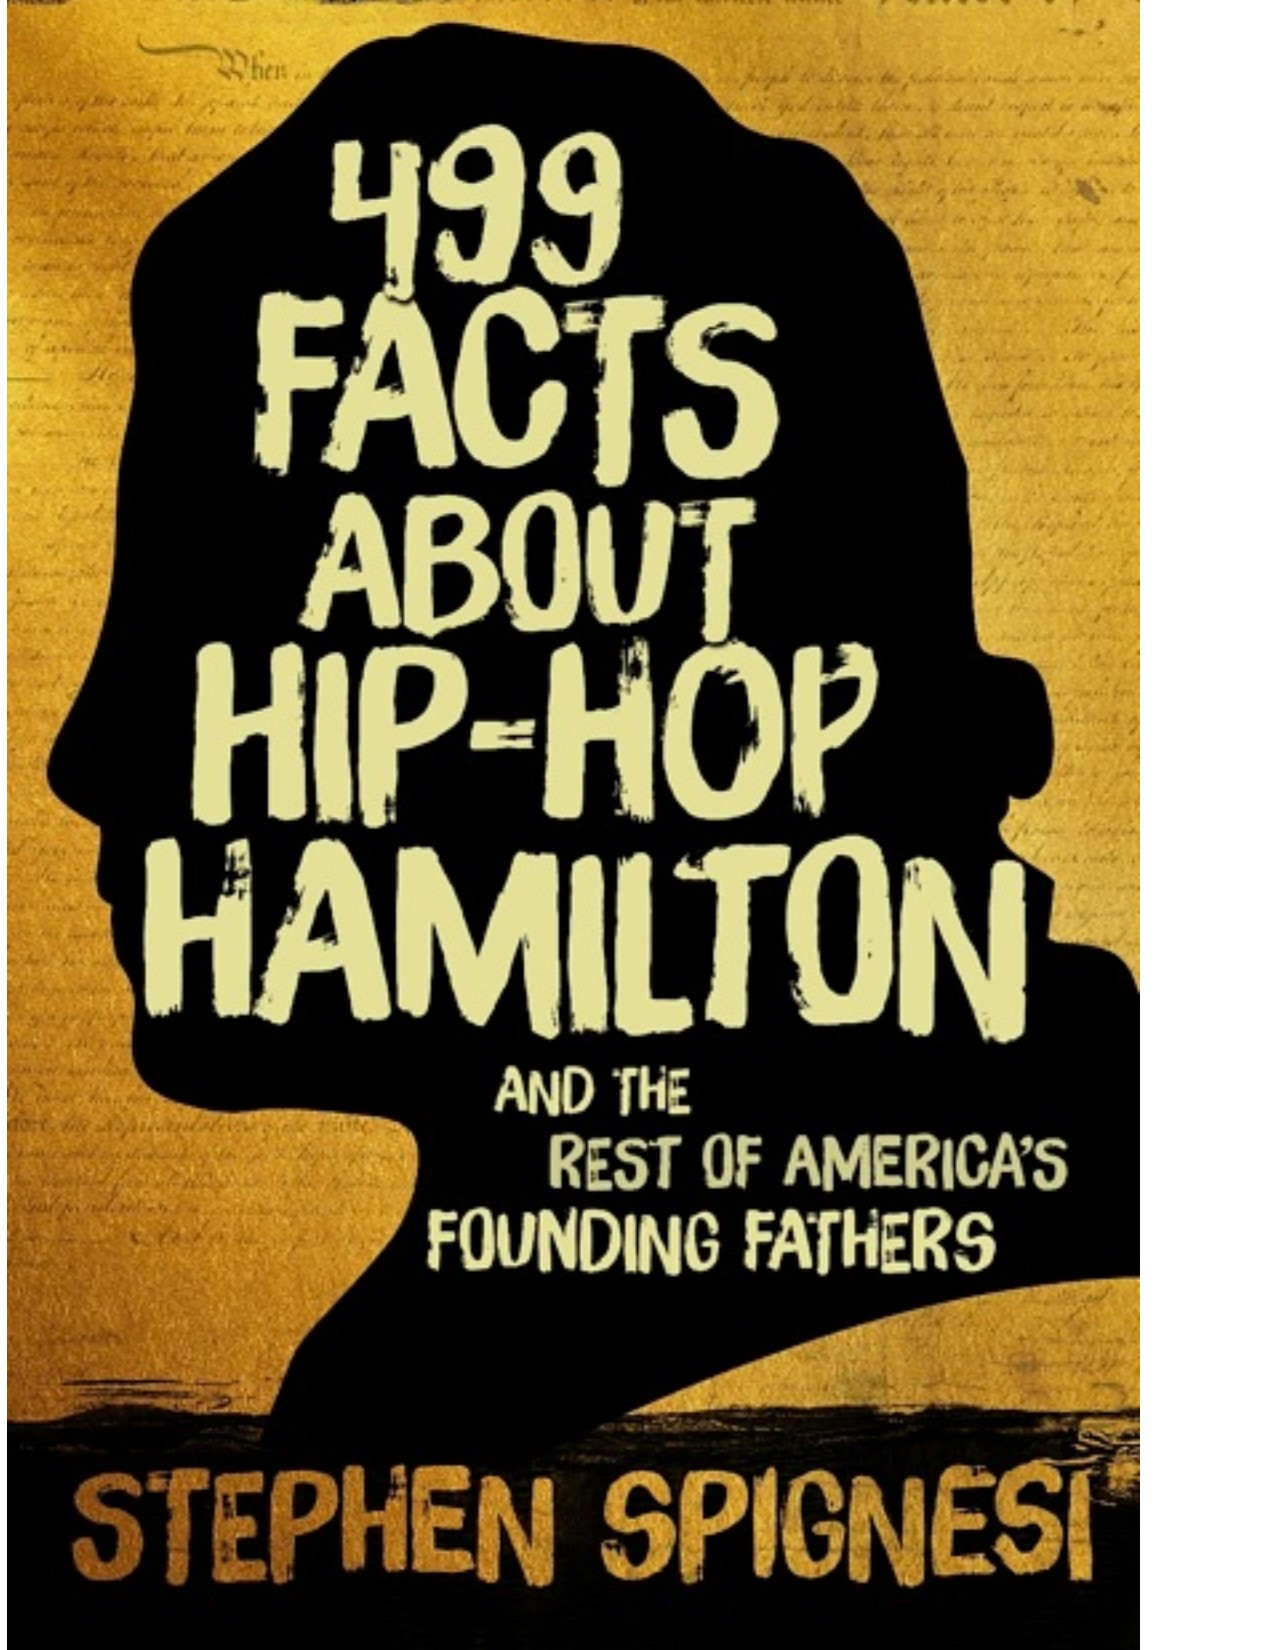 Hip-Hop Hamilton & The Founding Fathers